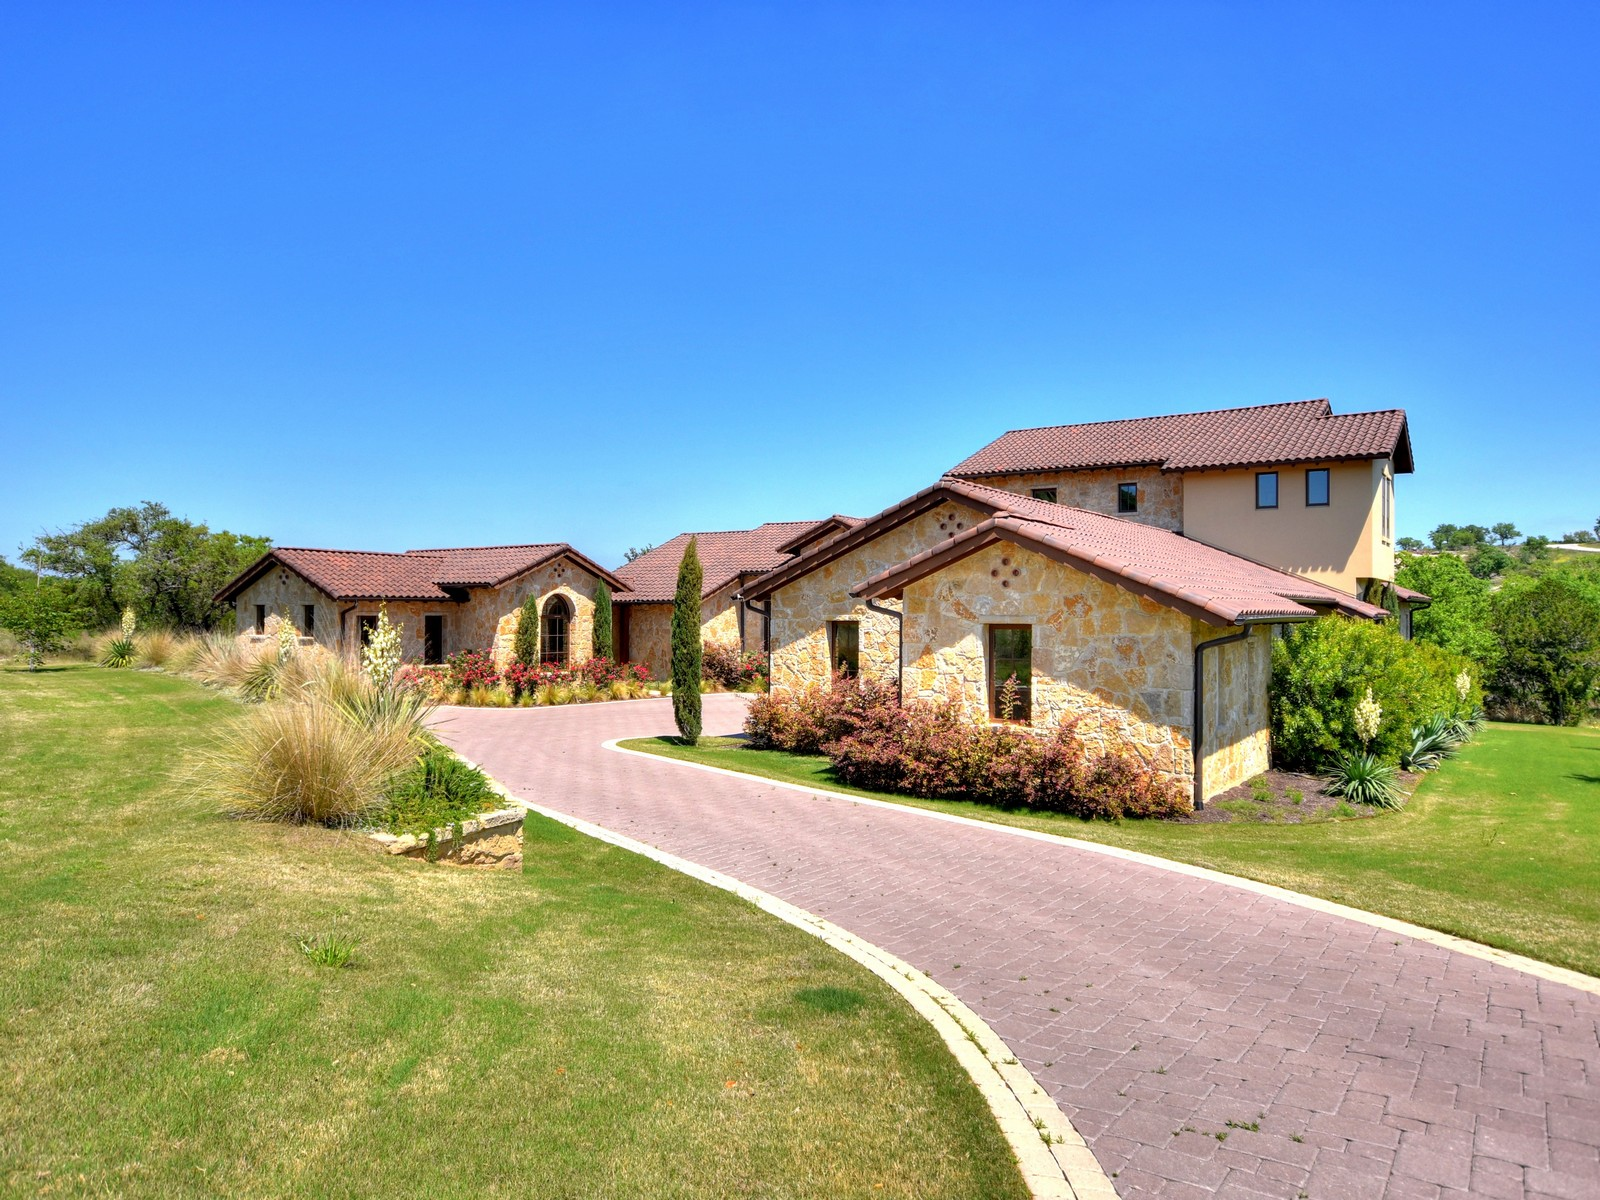 Single Family Home for Sale at The Trend Setter 6200 Spanish Oaks Club Blvd Austin, Texas, 78738 United States